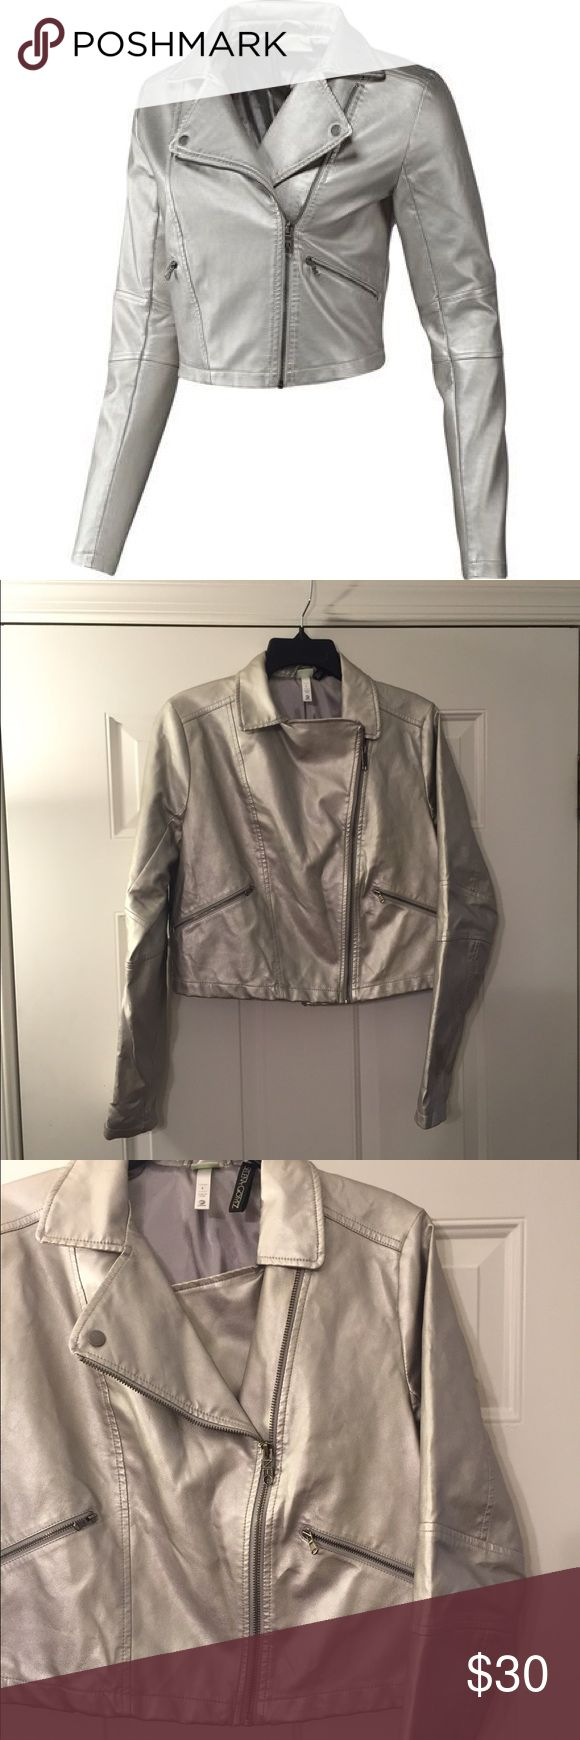 Adidas Neo Label Selena Gomez Silver Zip Up Jacket Great condition! Shorter/cropped length. Thank you for looking! Reposhing due to size. Adidas Jackets & Coats